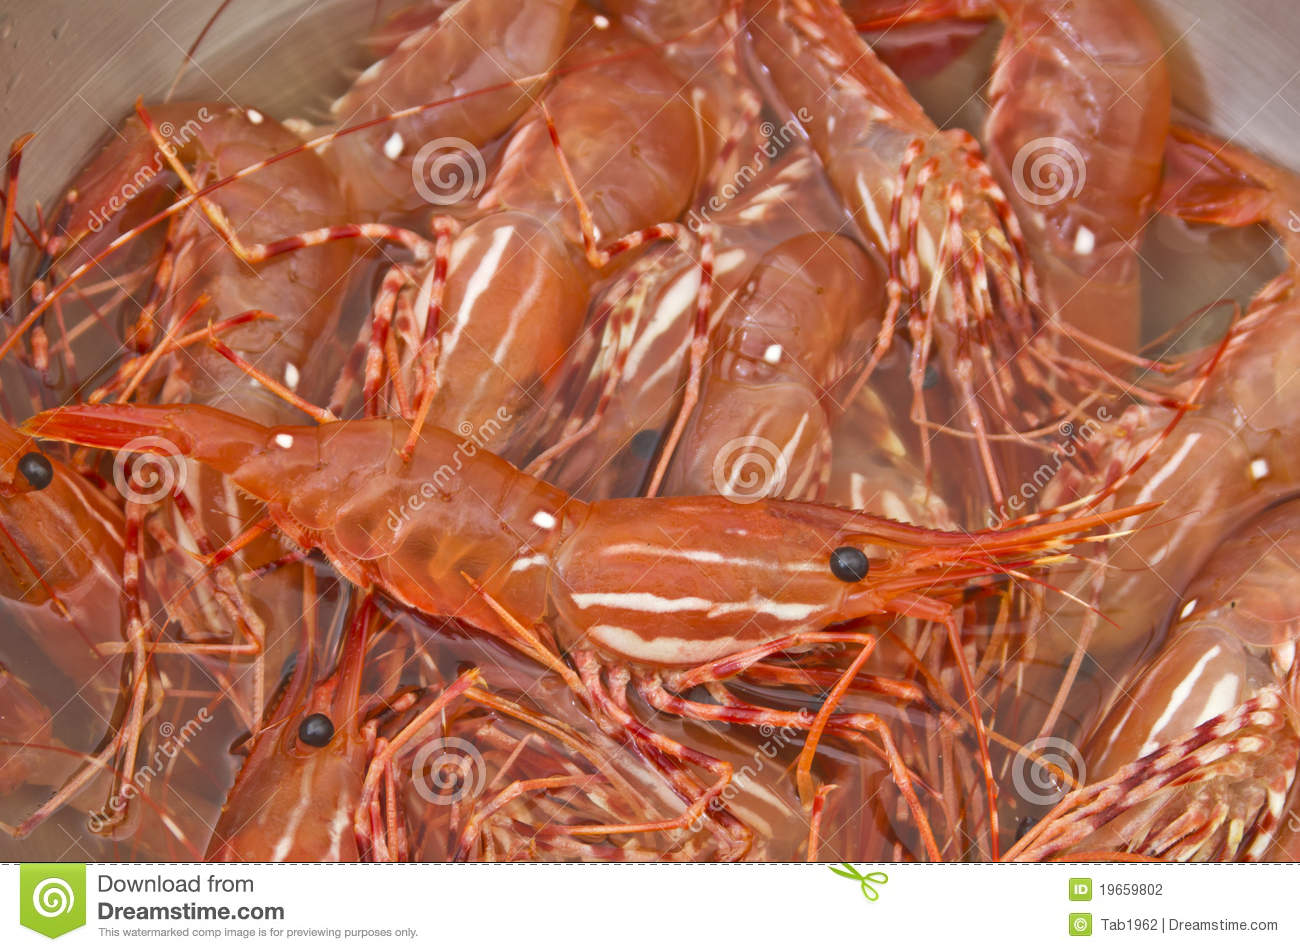 Bowl of fresh live shrimp stock photography image 19659802 for Fishing with live shrimp